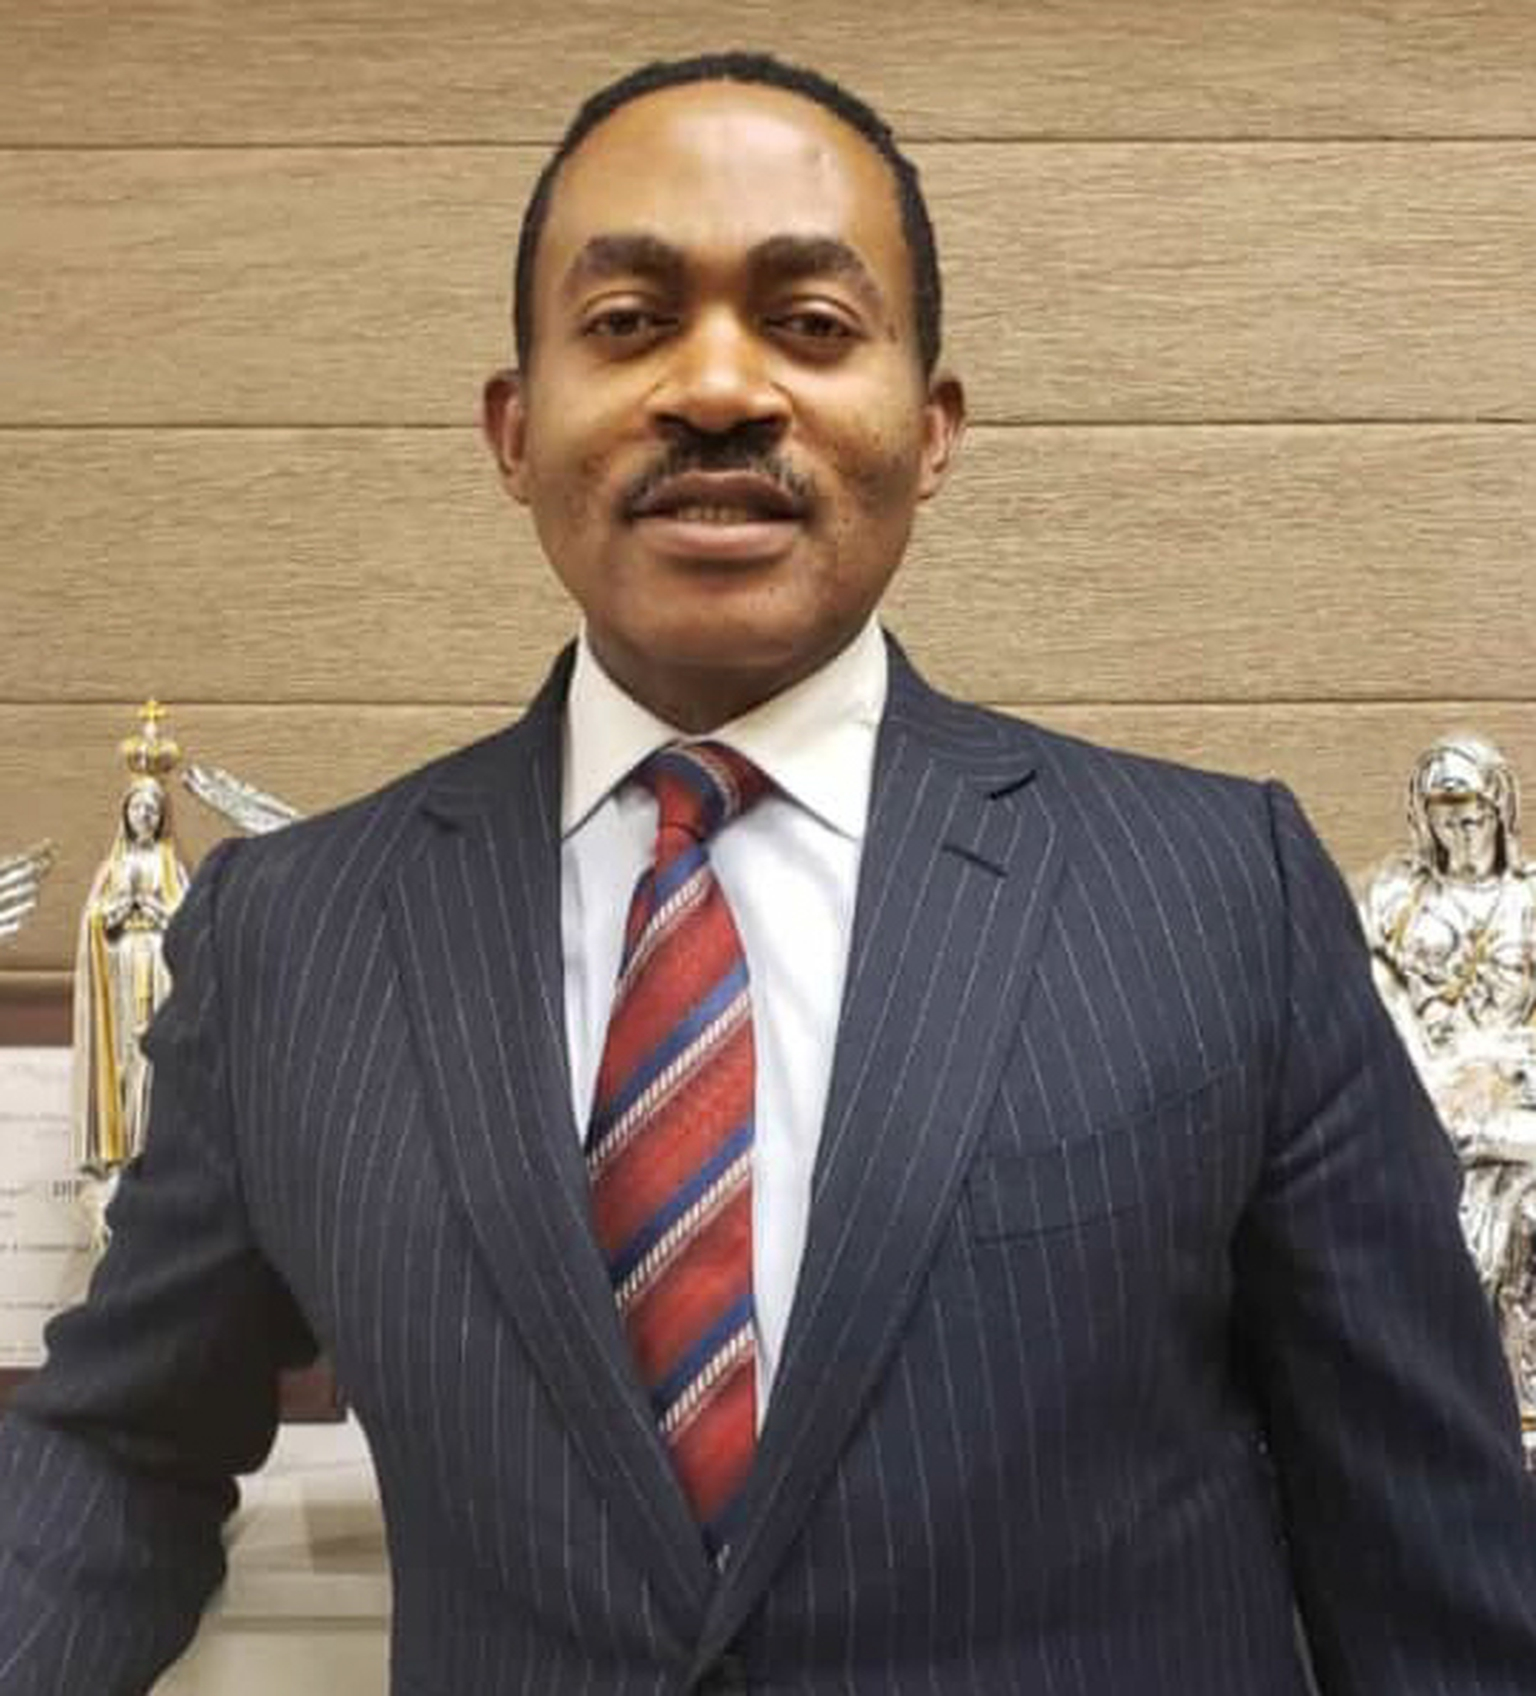 Nigerians knock US based doctor for promising to build 21 universities if elected Anambra governor